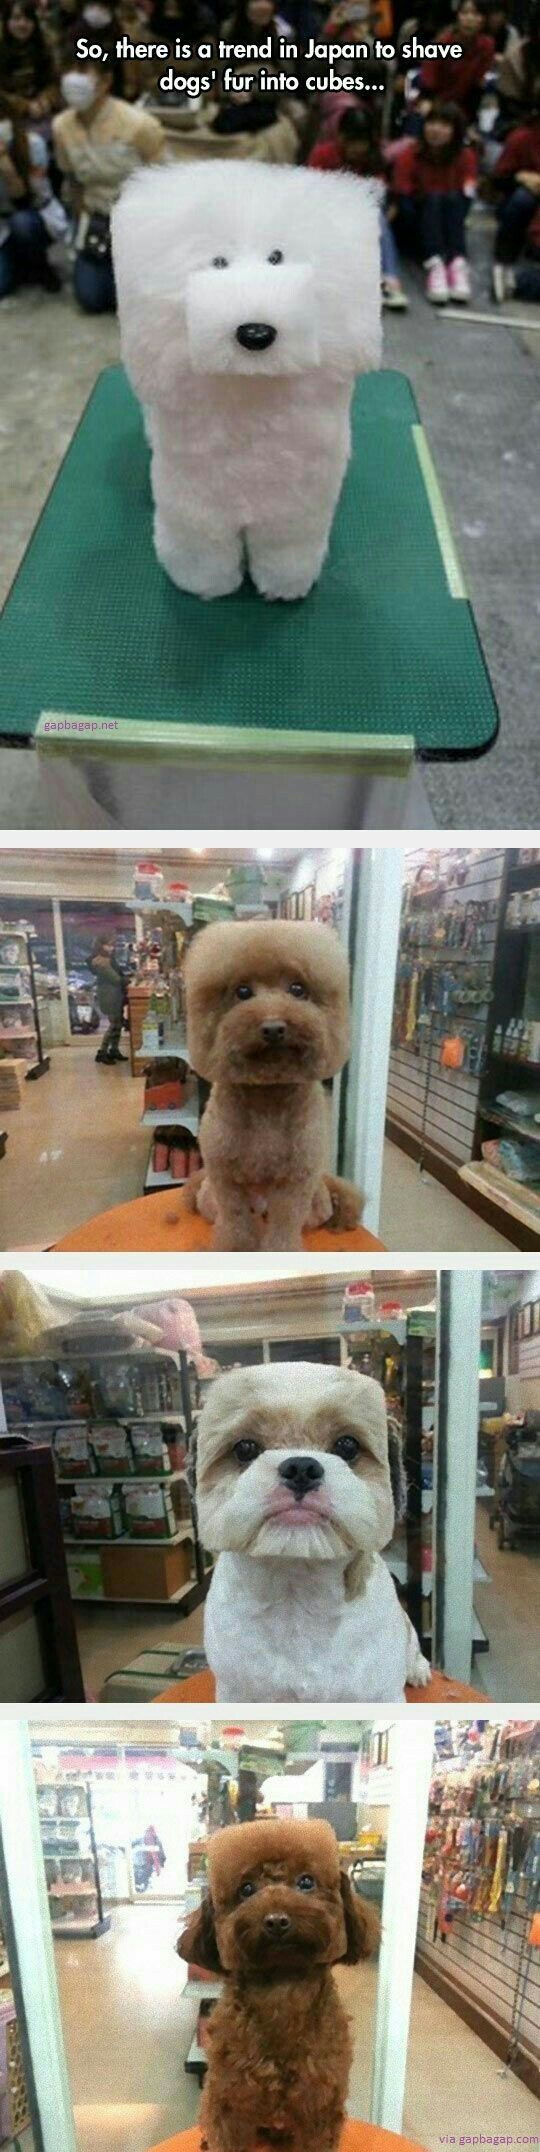 best funny groomed animals images on pinterest doggies funny